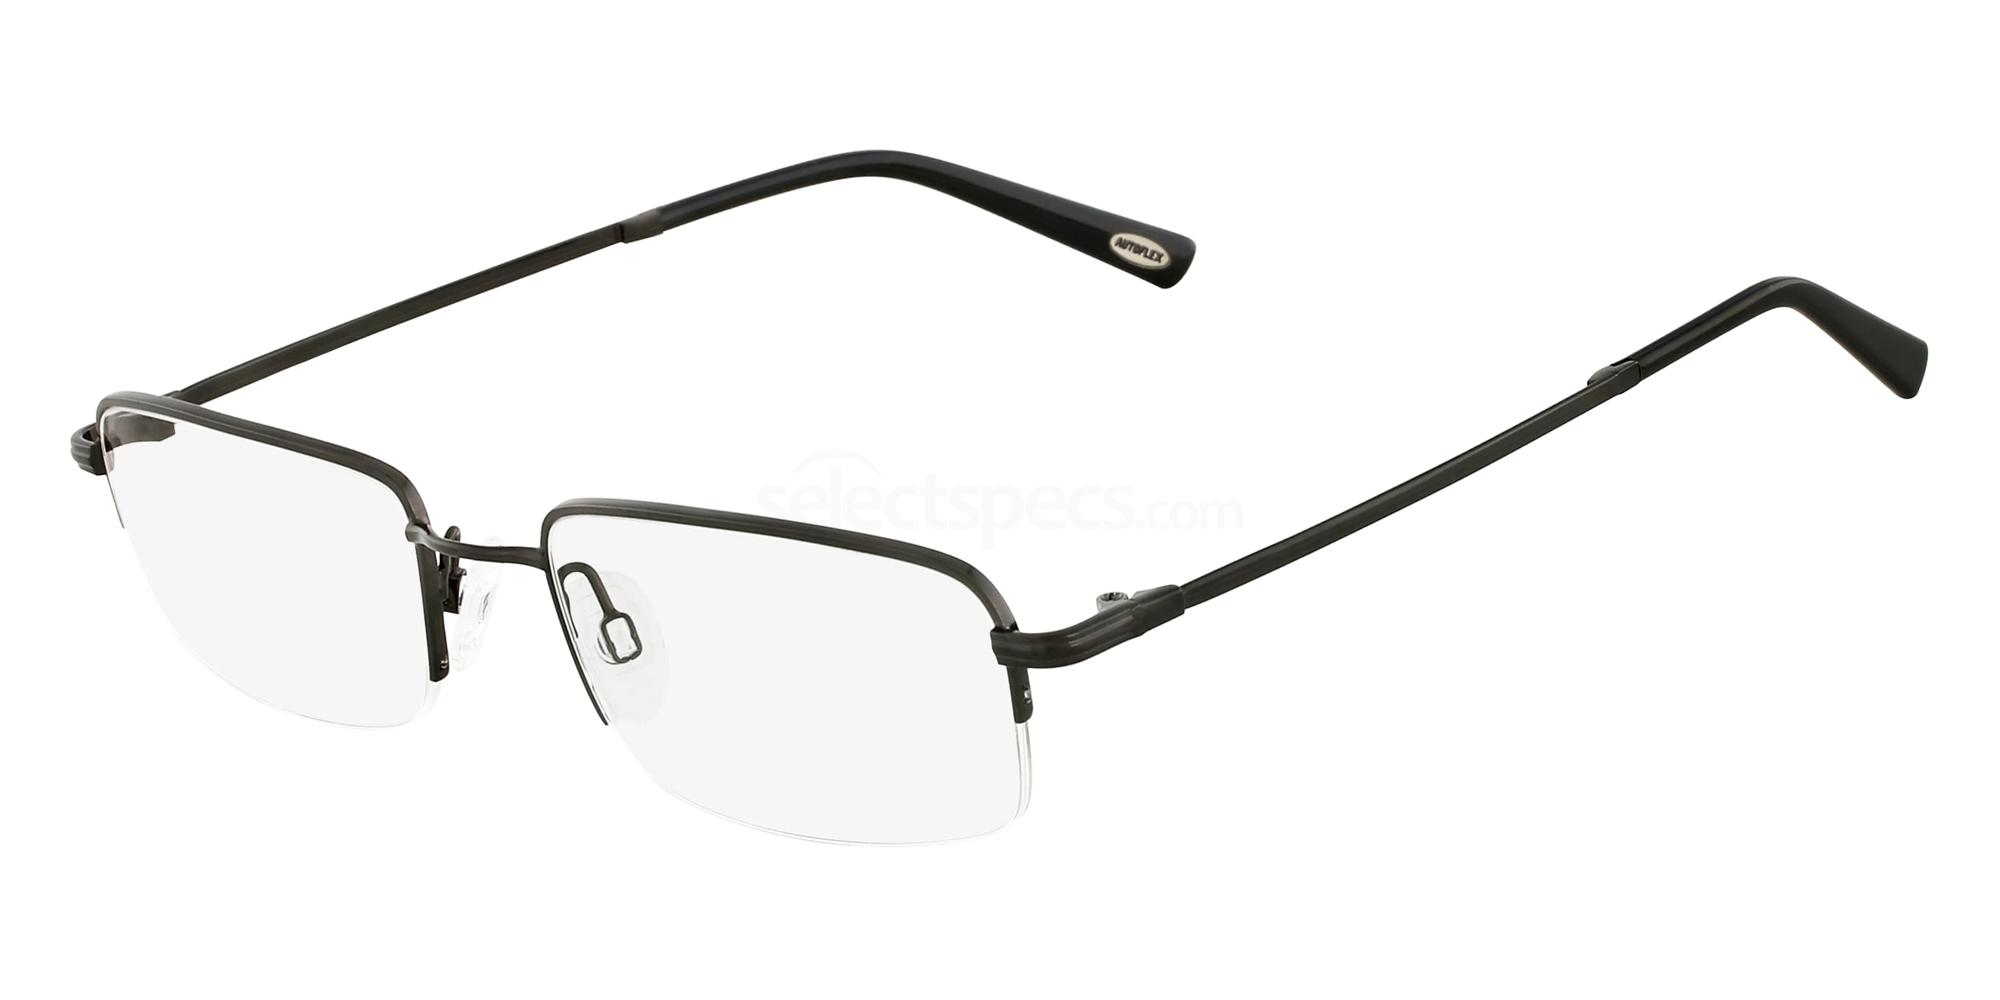 001 AUTOFLEX BULLDOG Glasses, Flexon